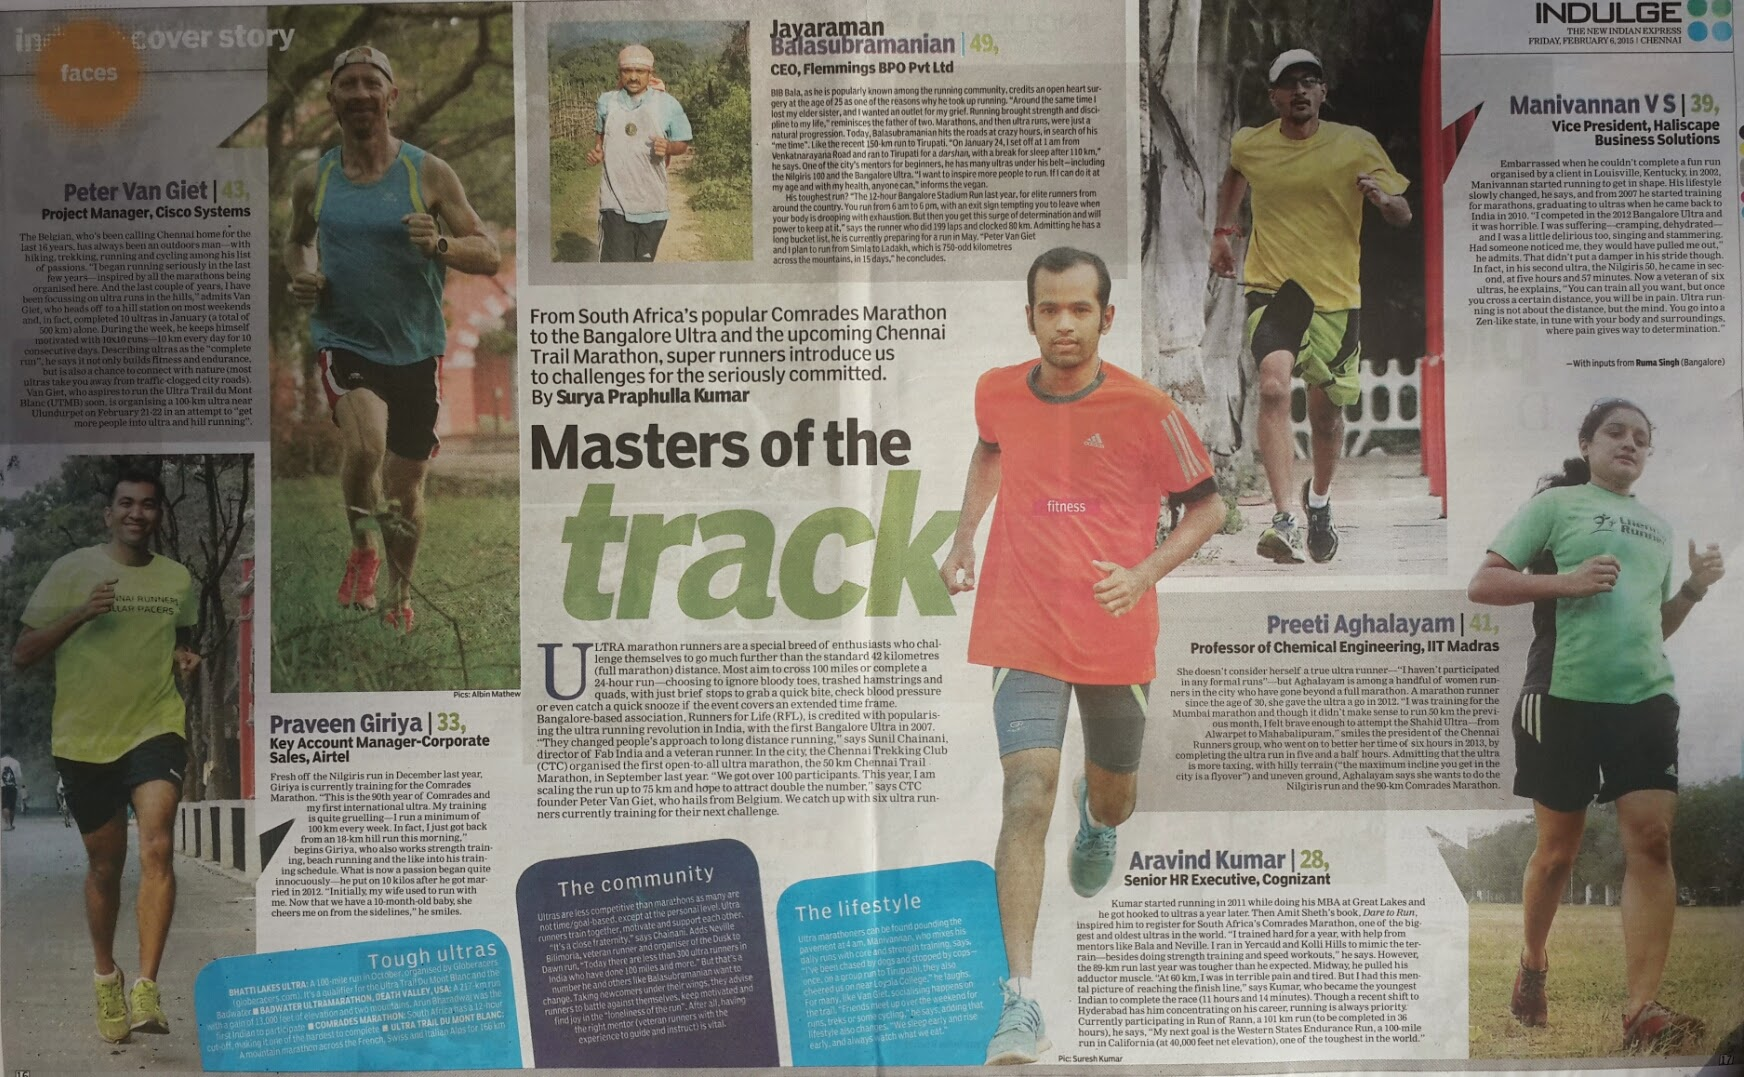 Photo: Indian Express Indulge cover story on Ultra Running, endurance, mental toughness, changing your lifestyle and connecting with nature.